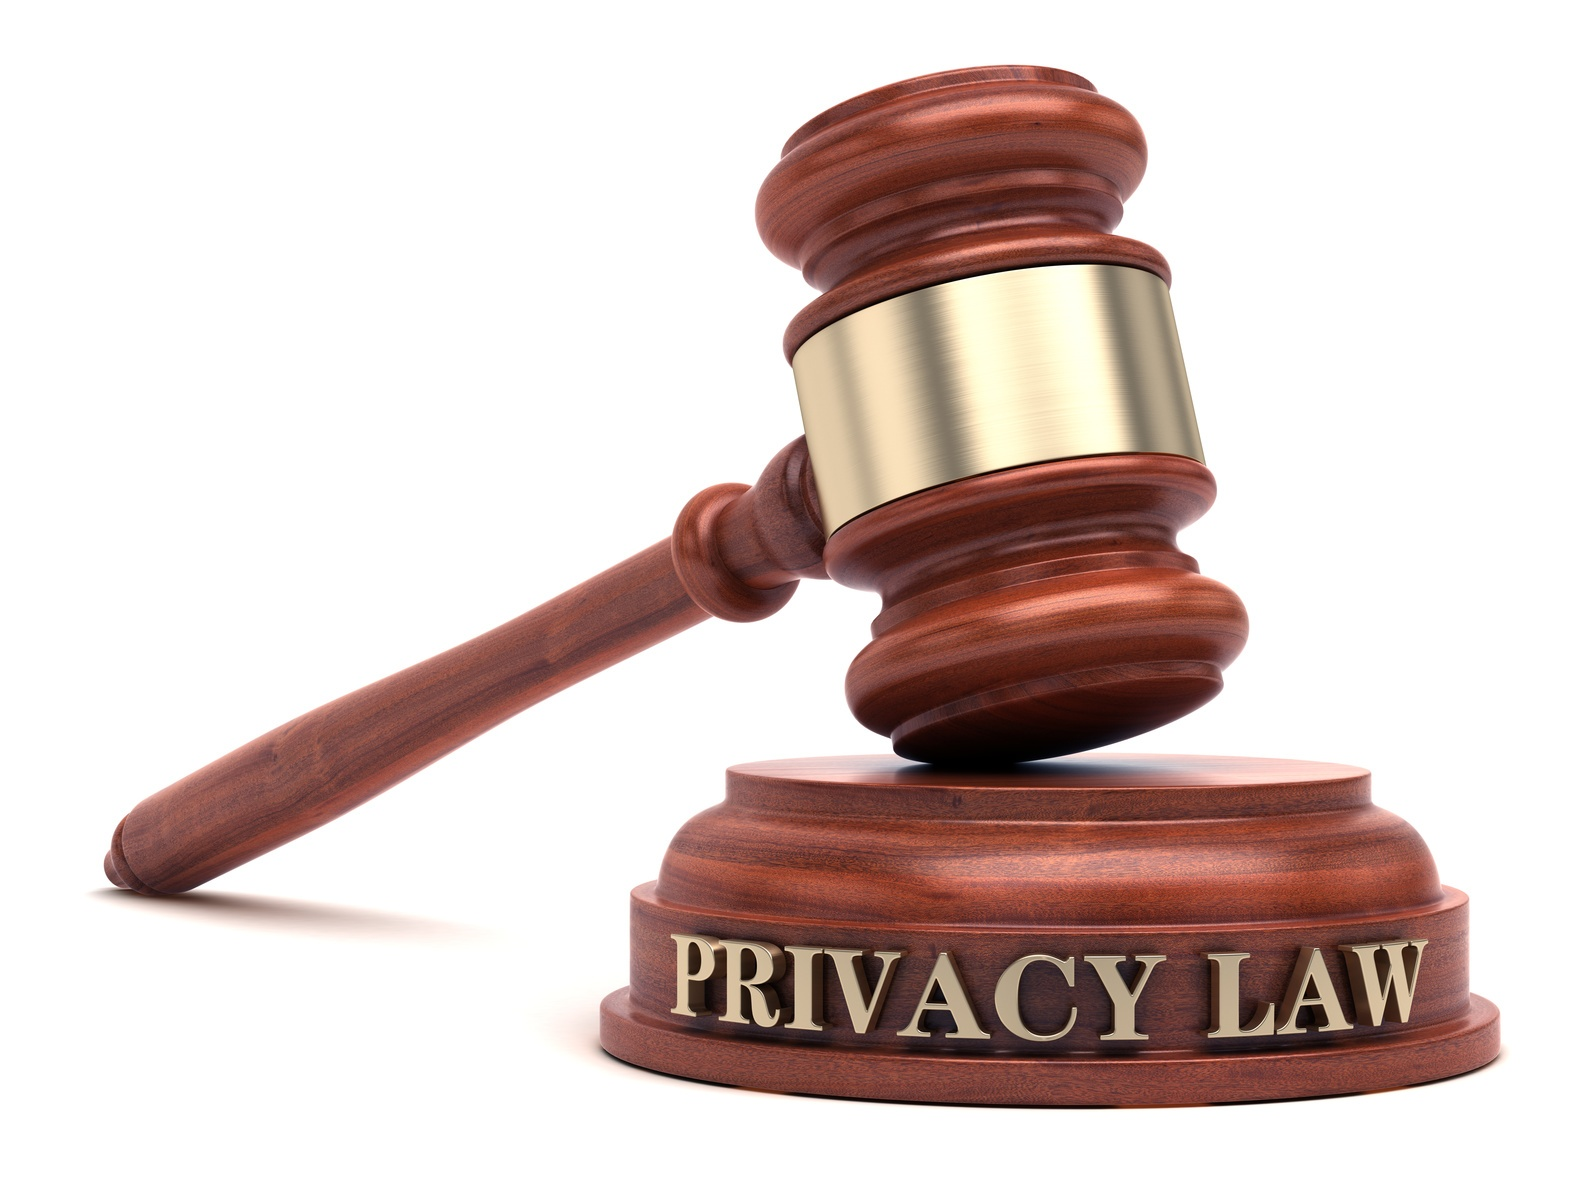 California Privacy Law Has National Impact